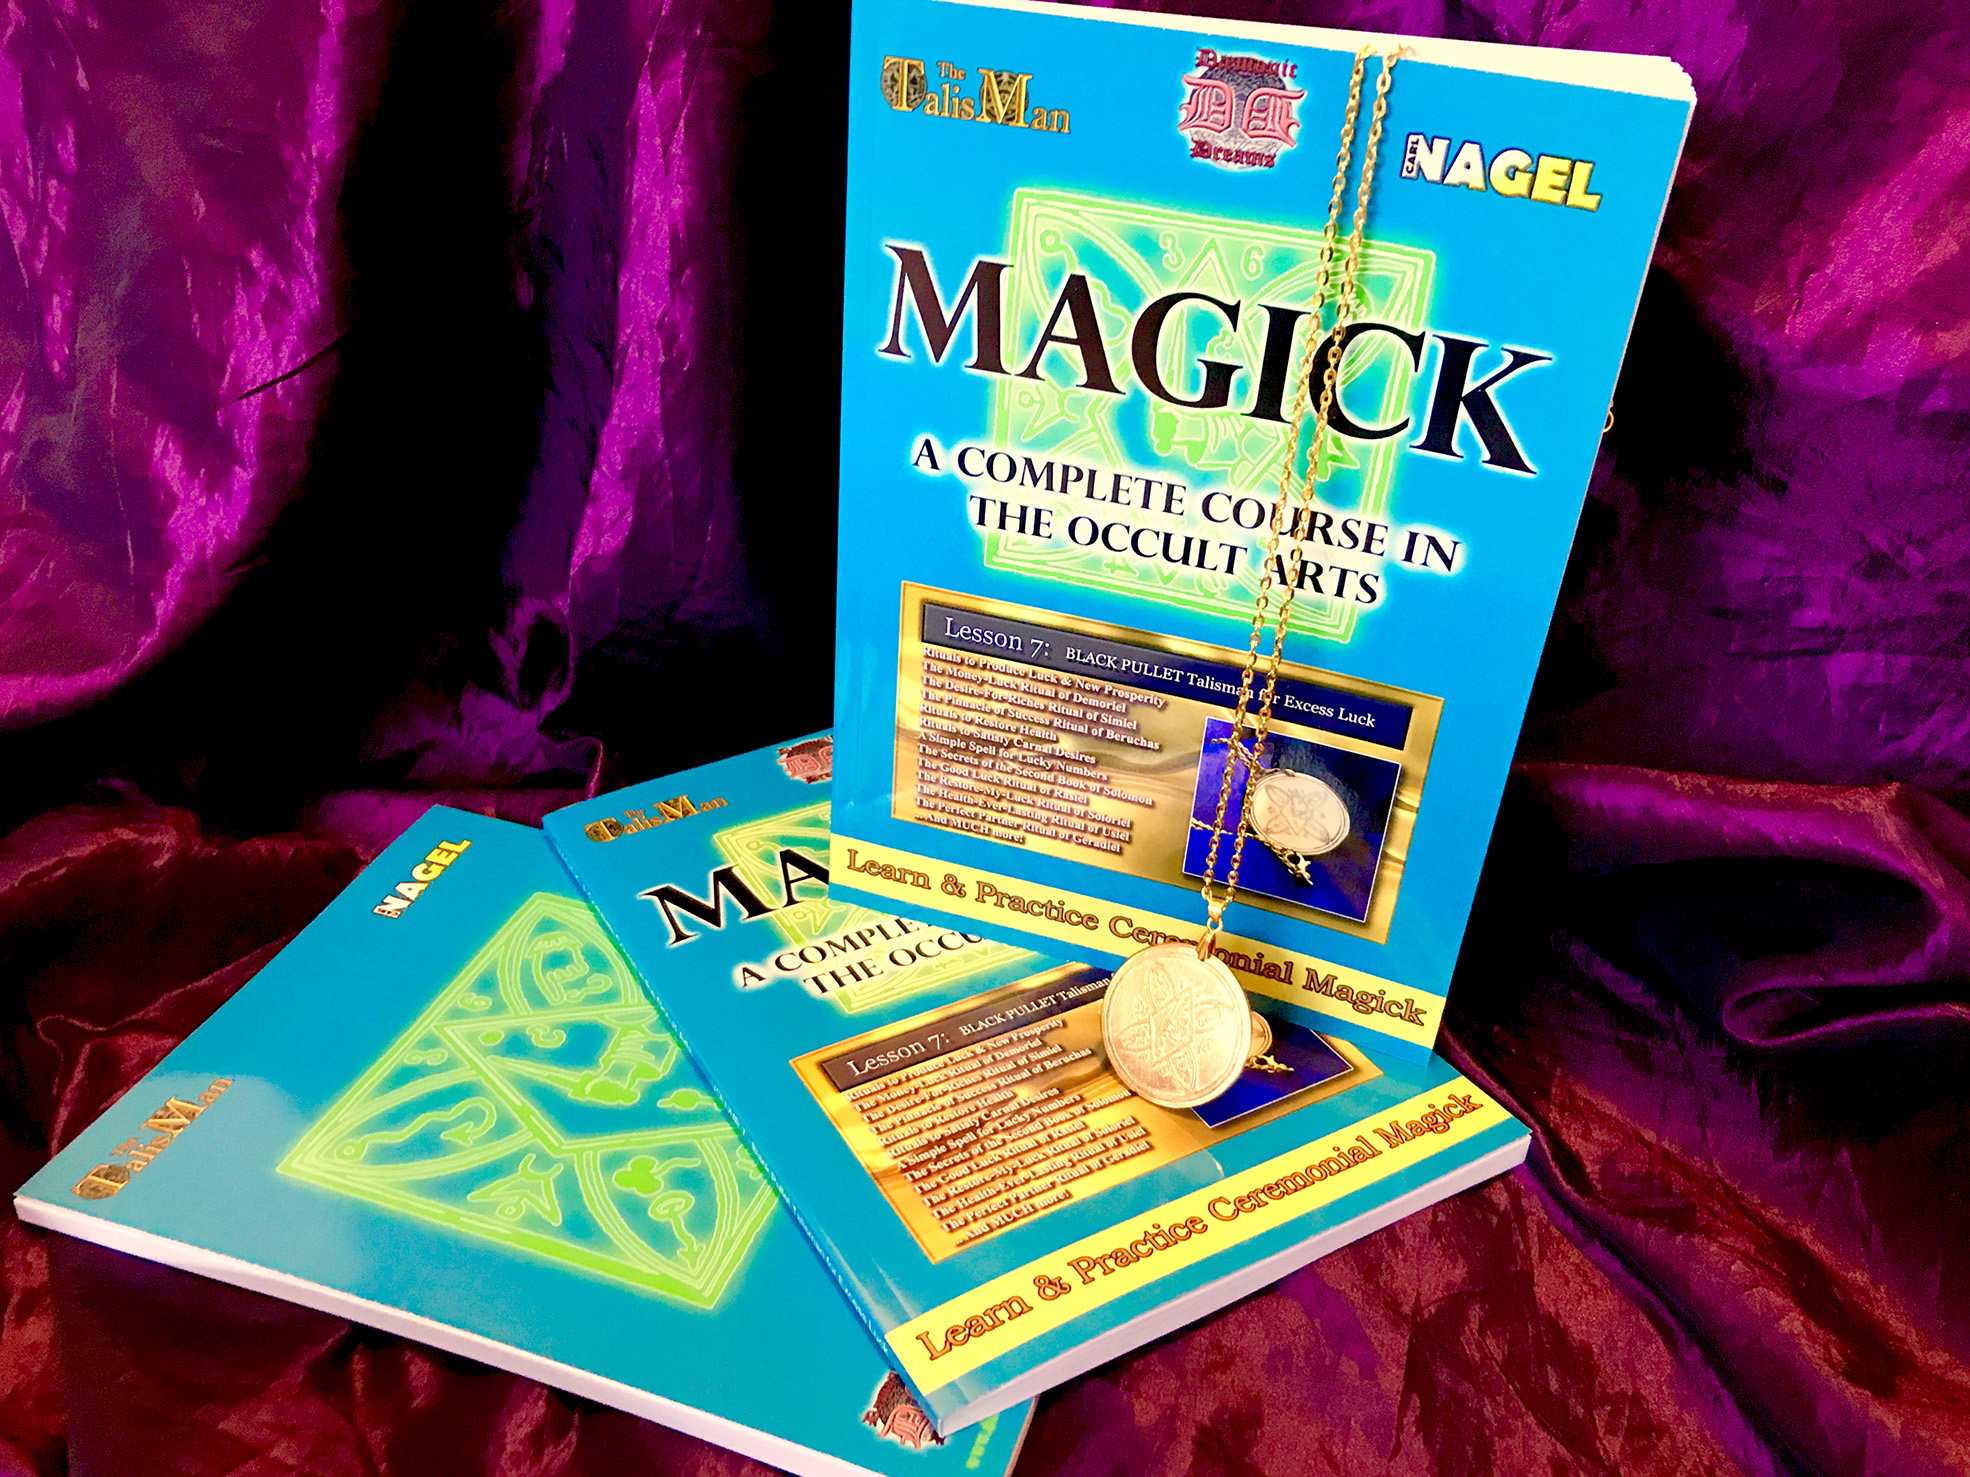 MAGICK - A Complete Course in the Occult Arts Vol. 7